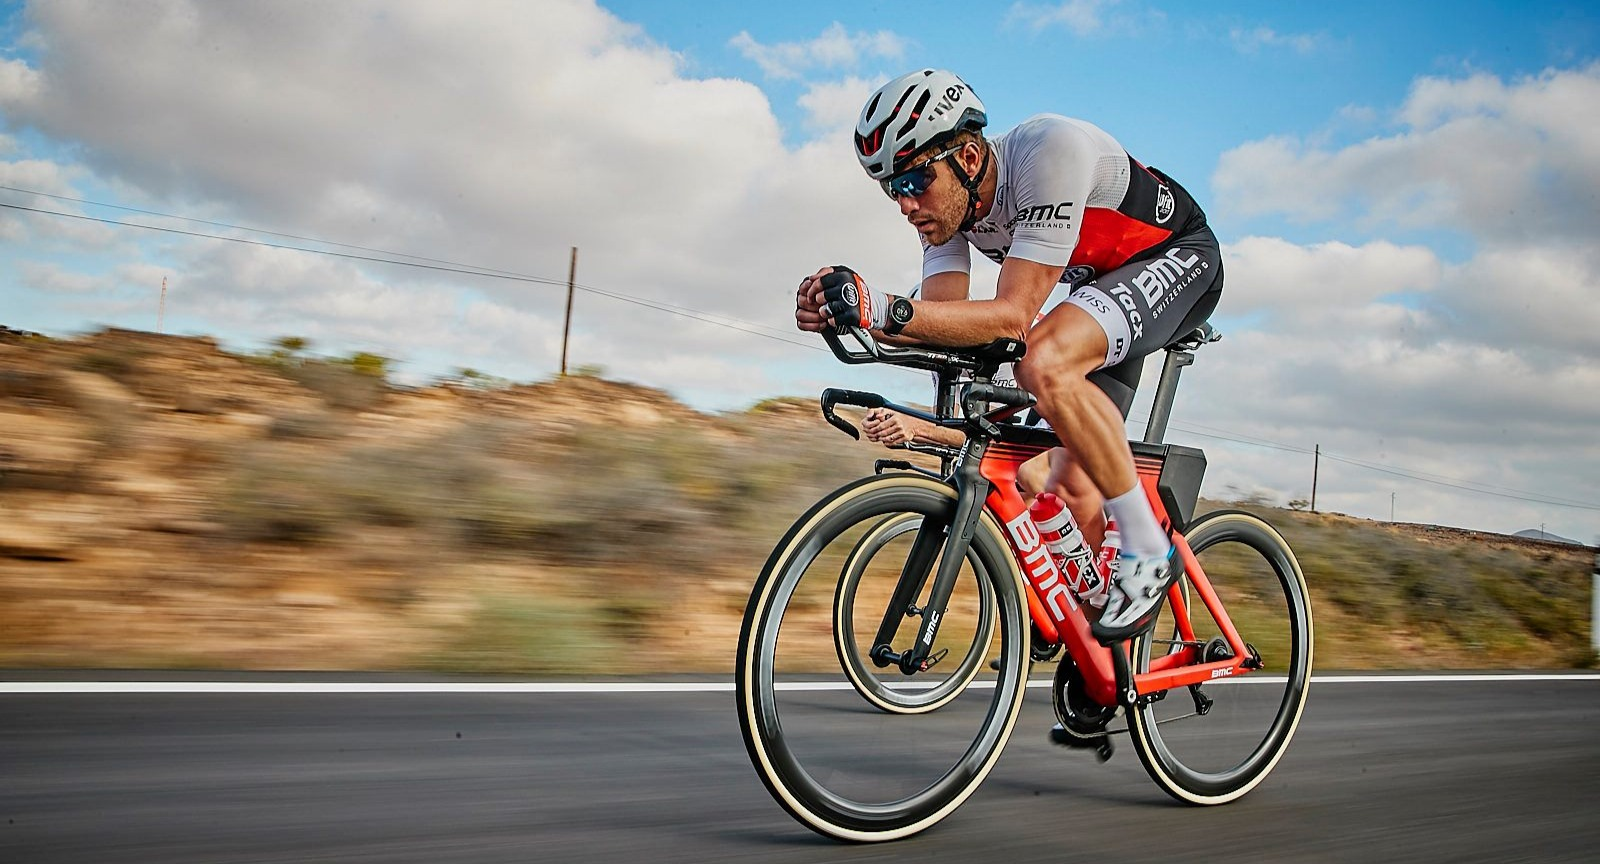 BMC's team rider Chris Leiferman rides in the Boulder Ironman